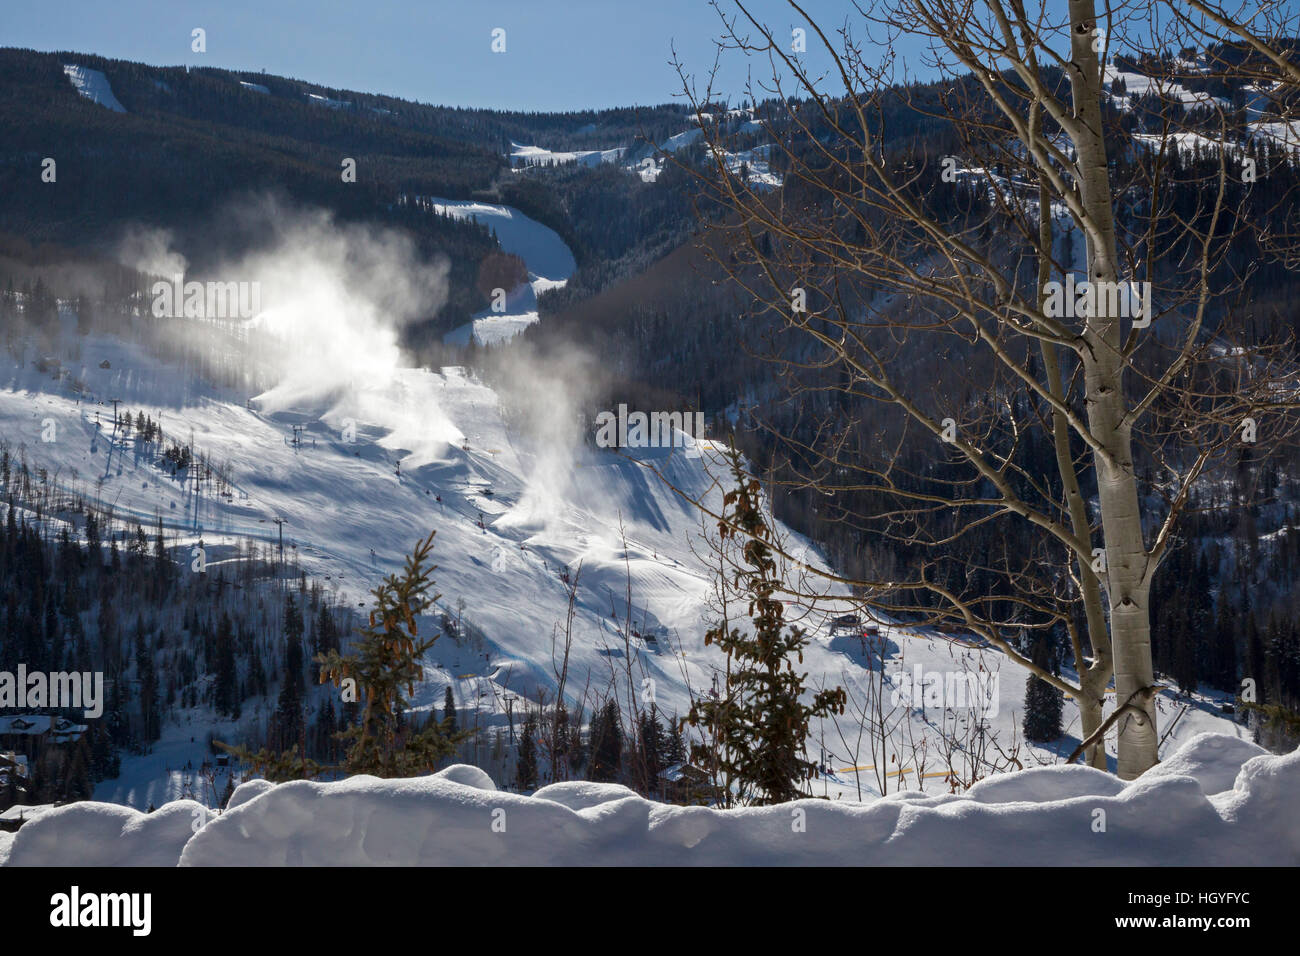 Vail, Colorado - Snowmaking at Vail Ski Resort - Stock Image